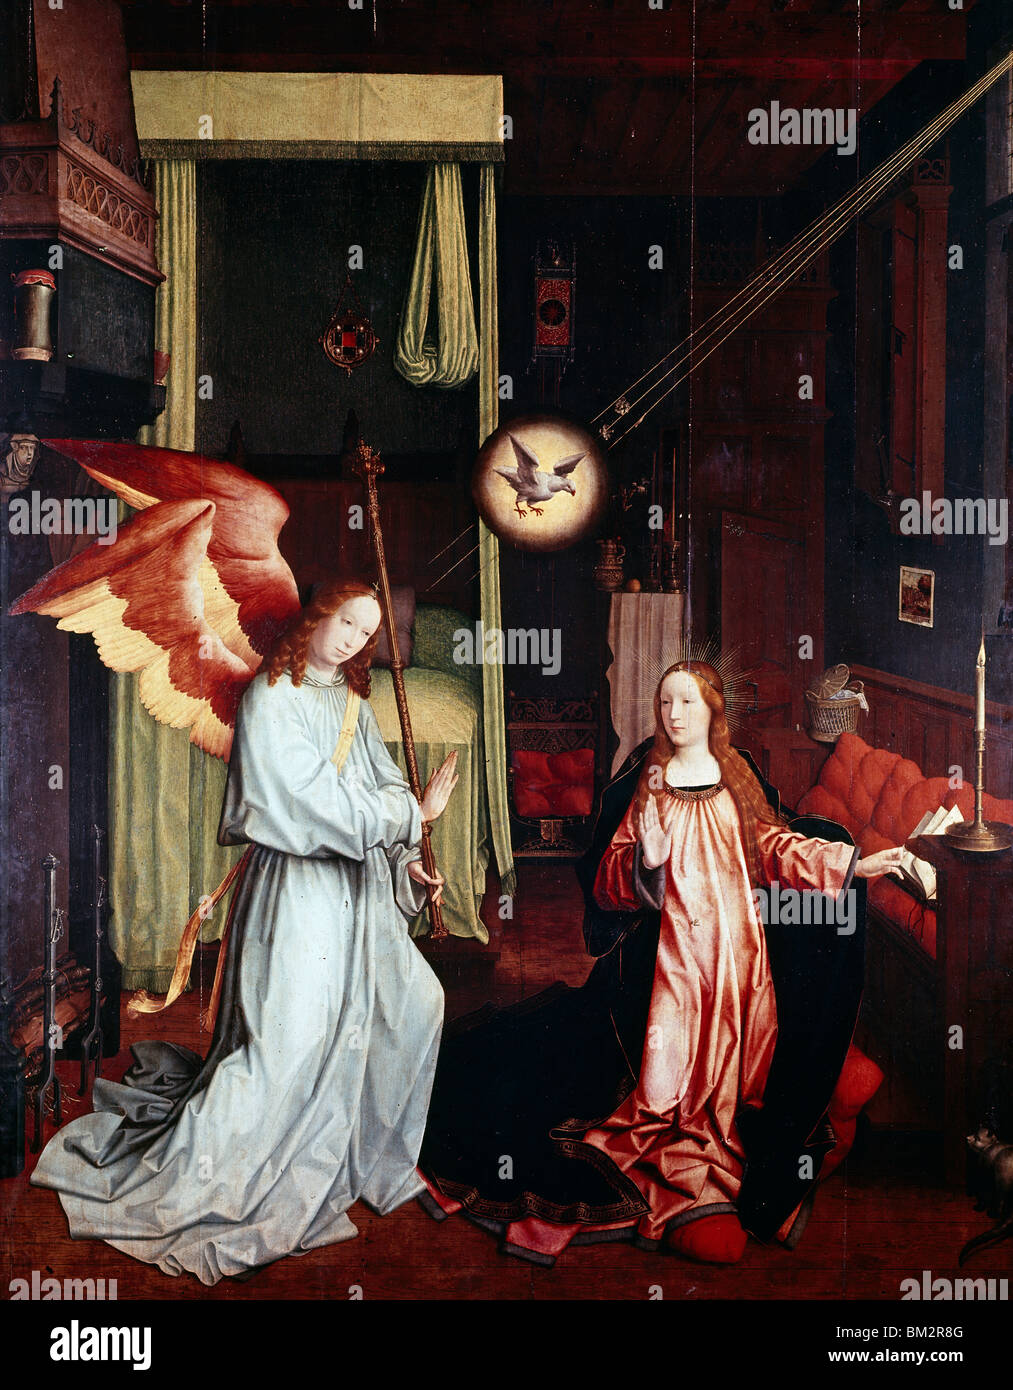 The Annunciation by Jan Provost the Younger, (1465-1529) - Stock Image